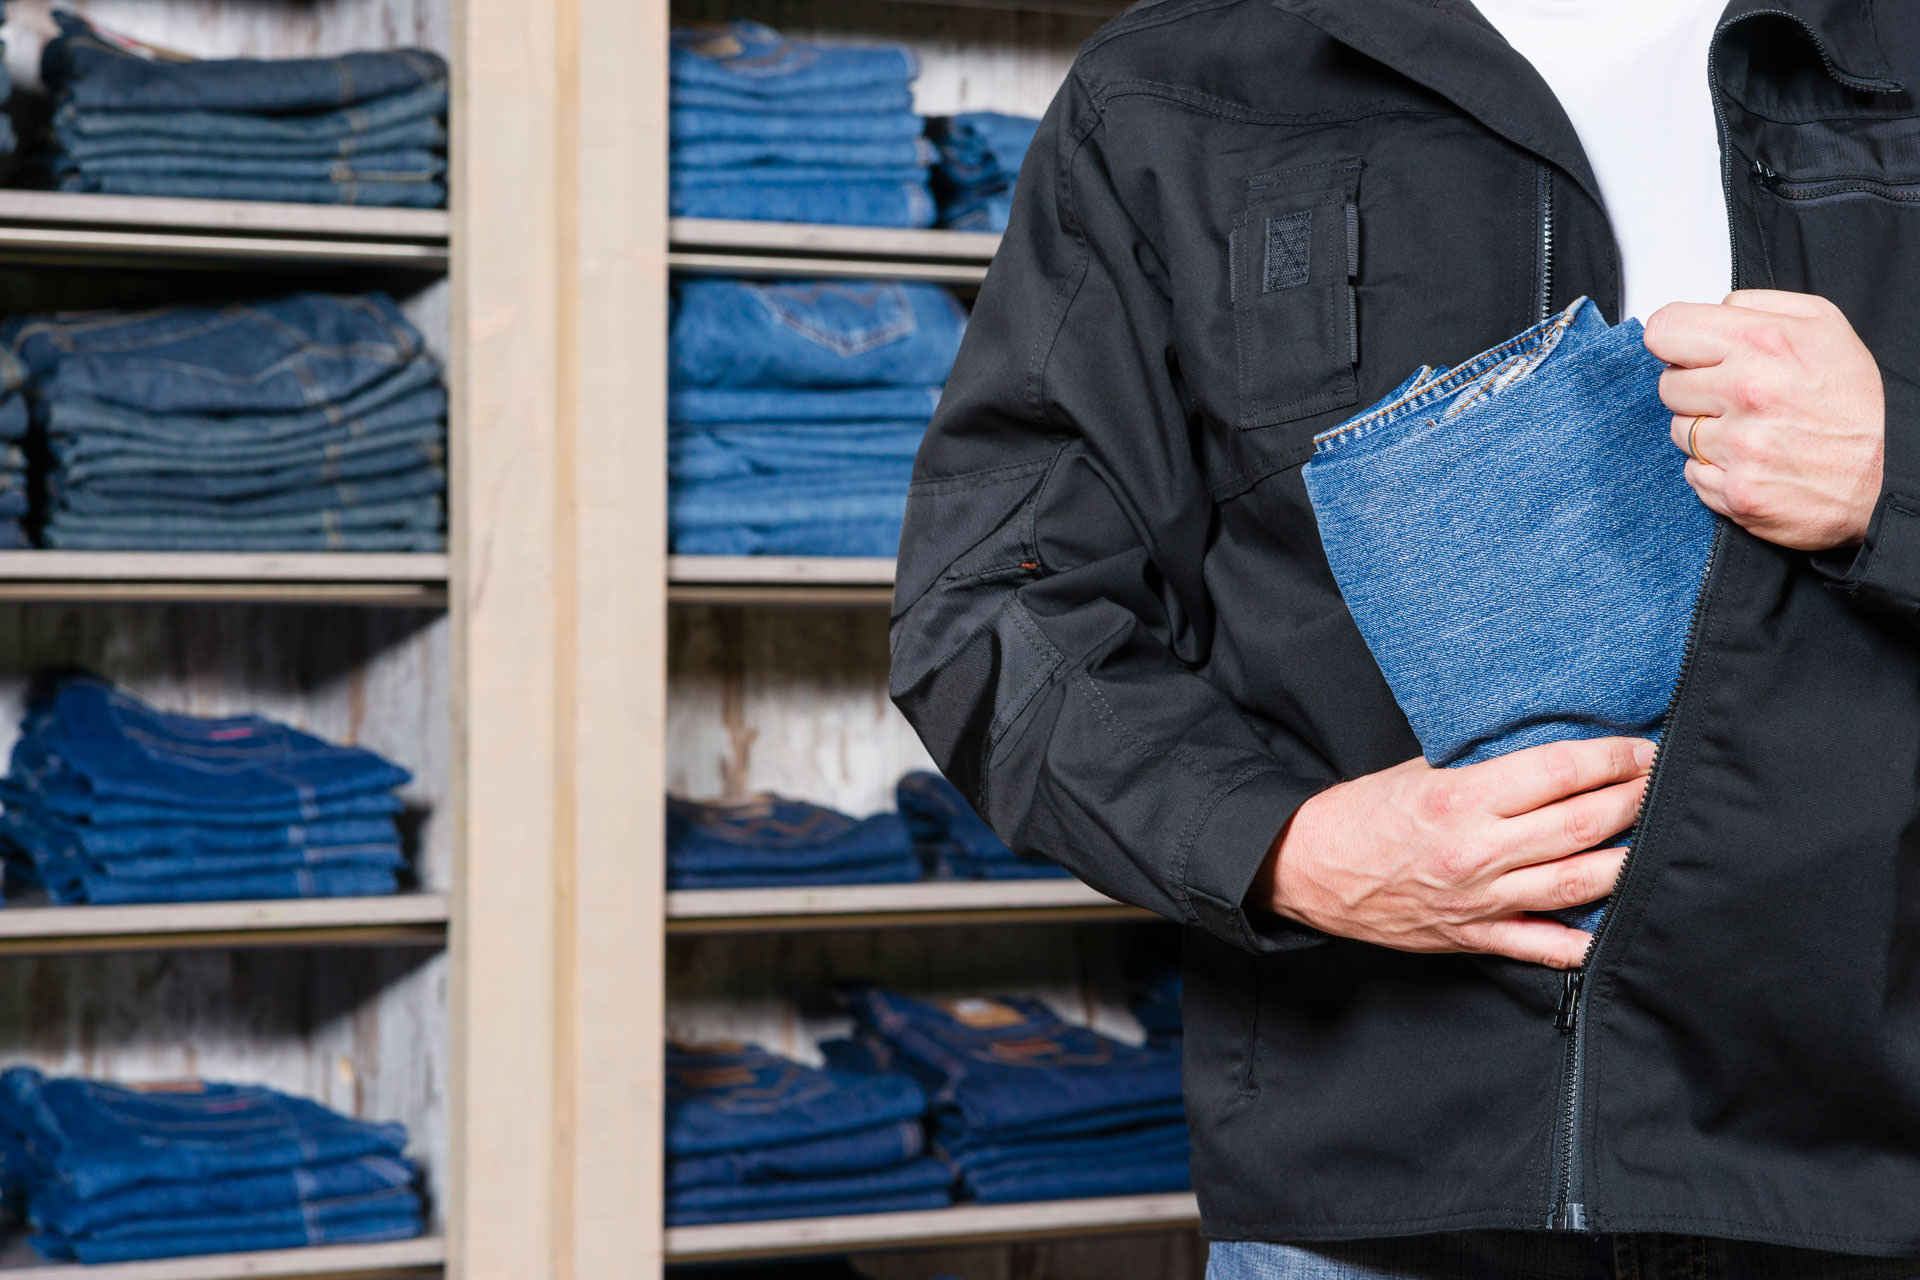 Sacramento Shoplifting Misdemeanor Attorney